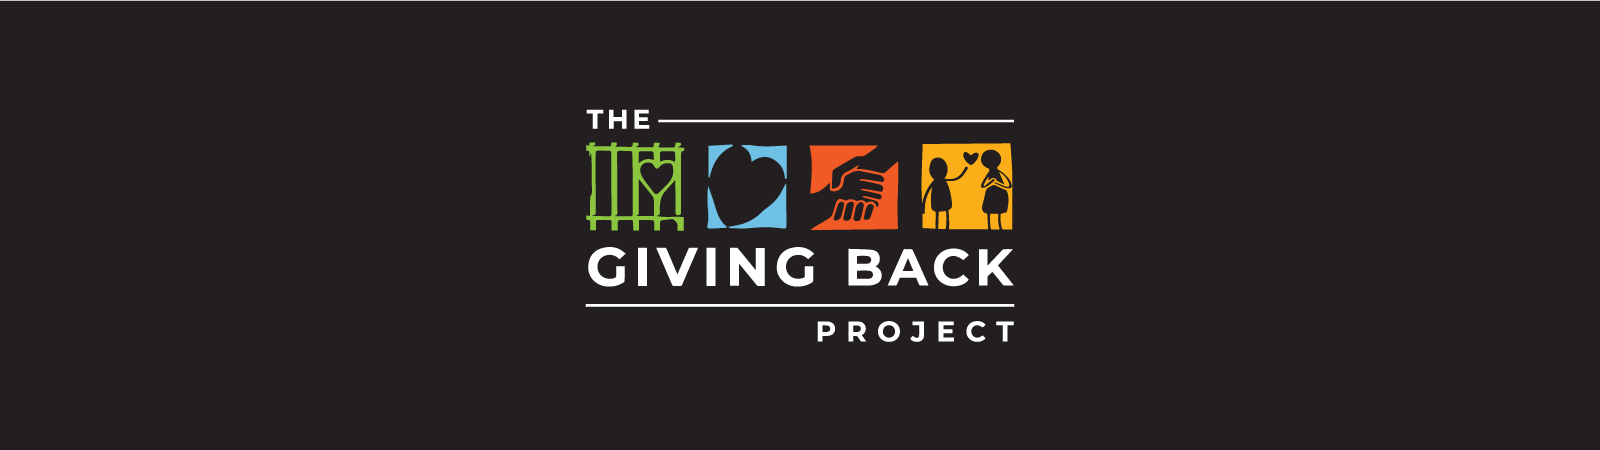 The Giving Back Project